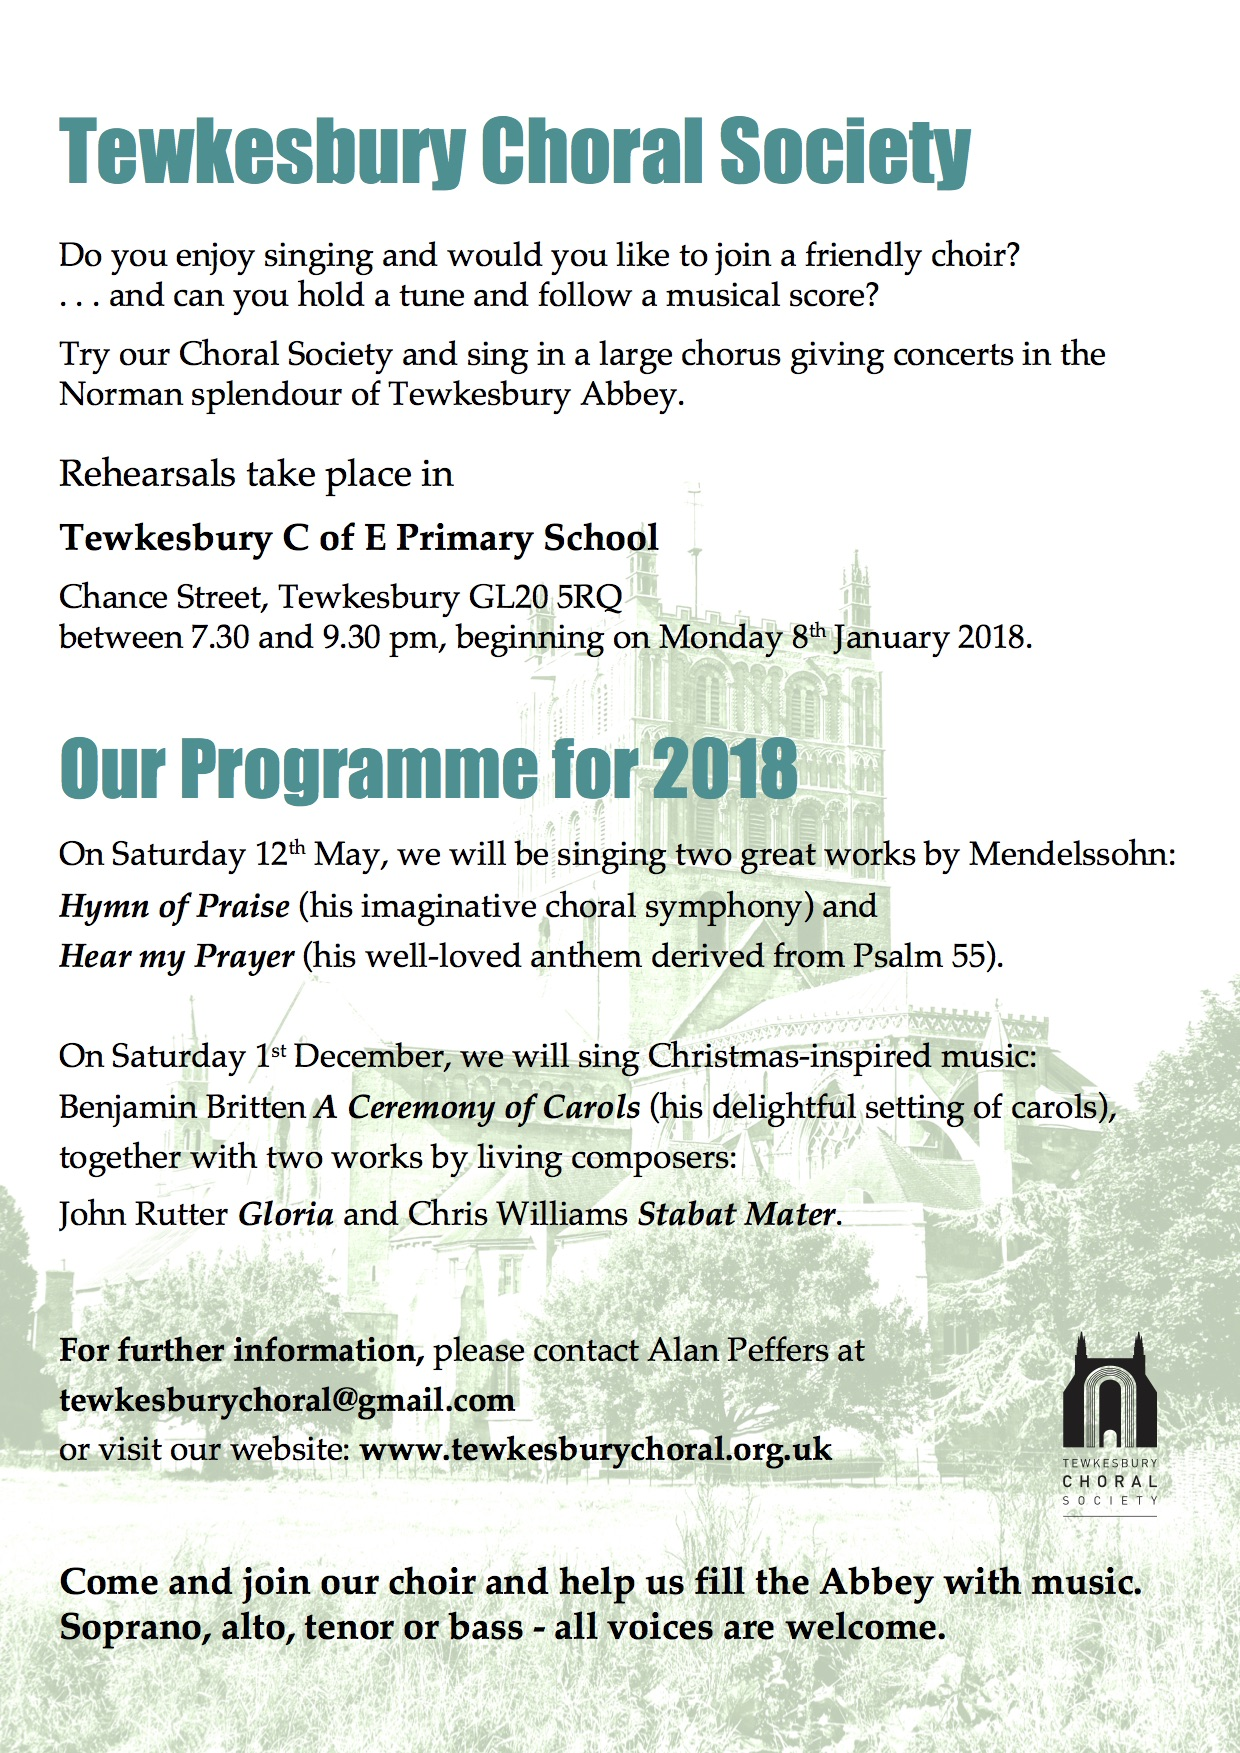 Join and General Info - Tewkesbury Choral